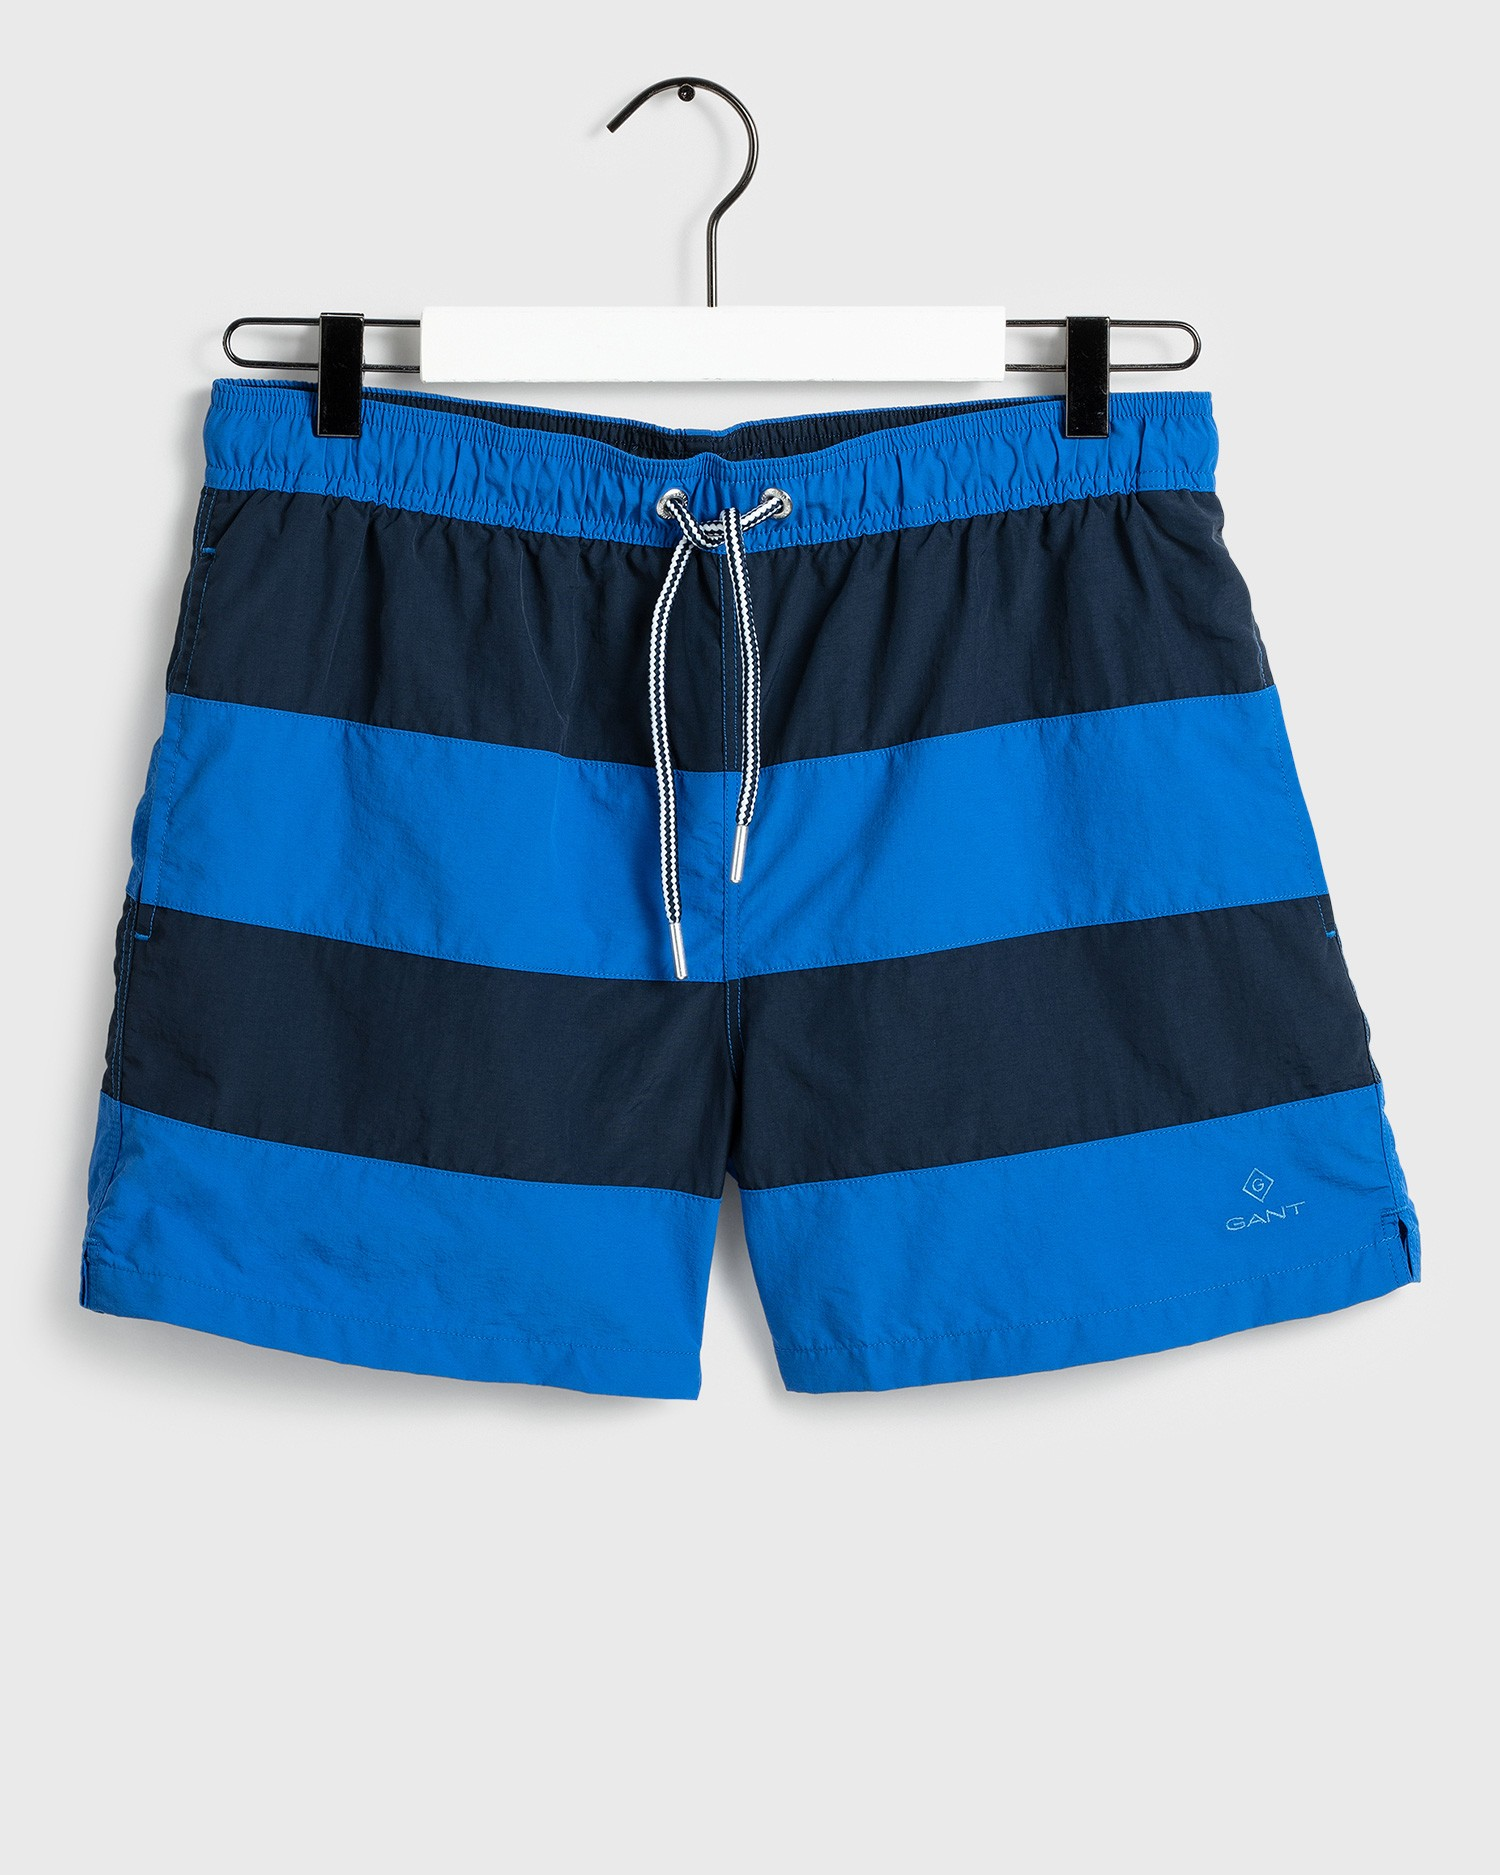 GANT Men's Blue Swimwear - 922016008